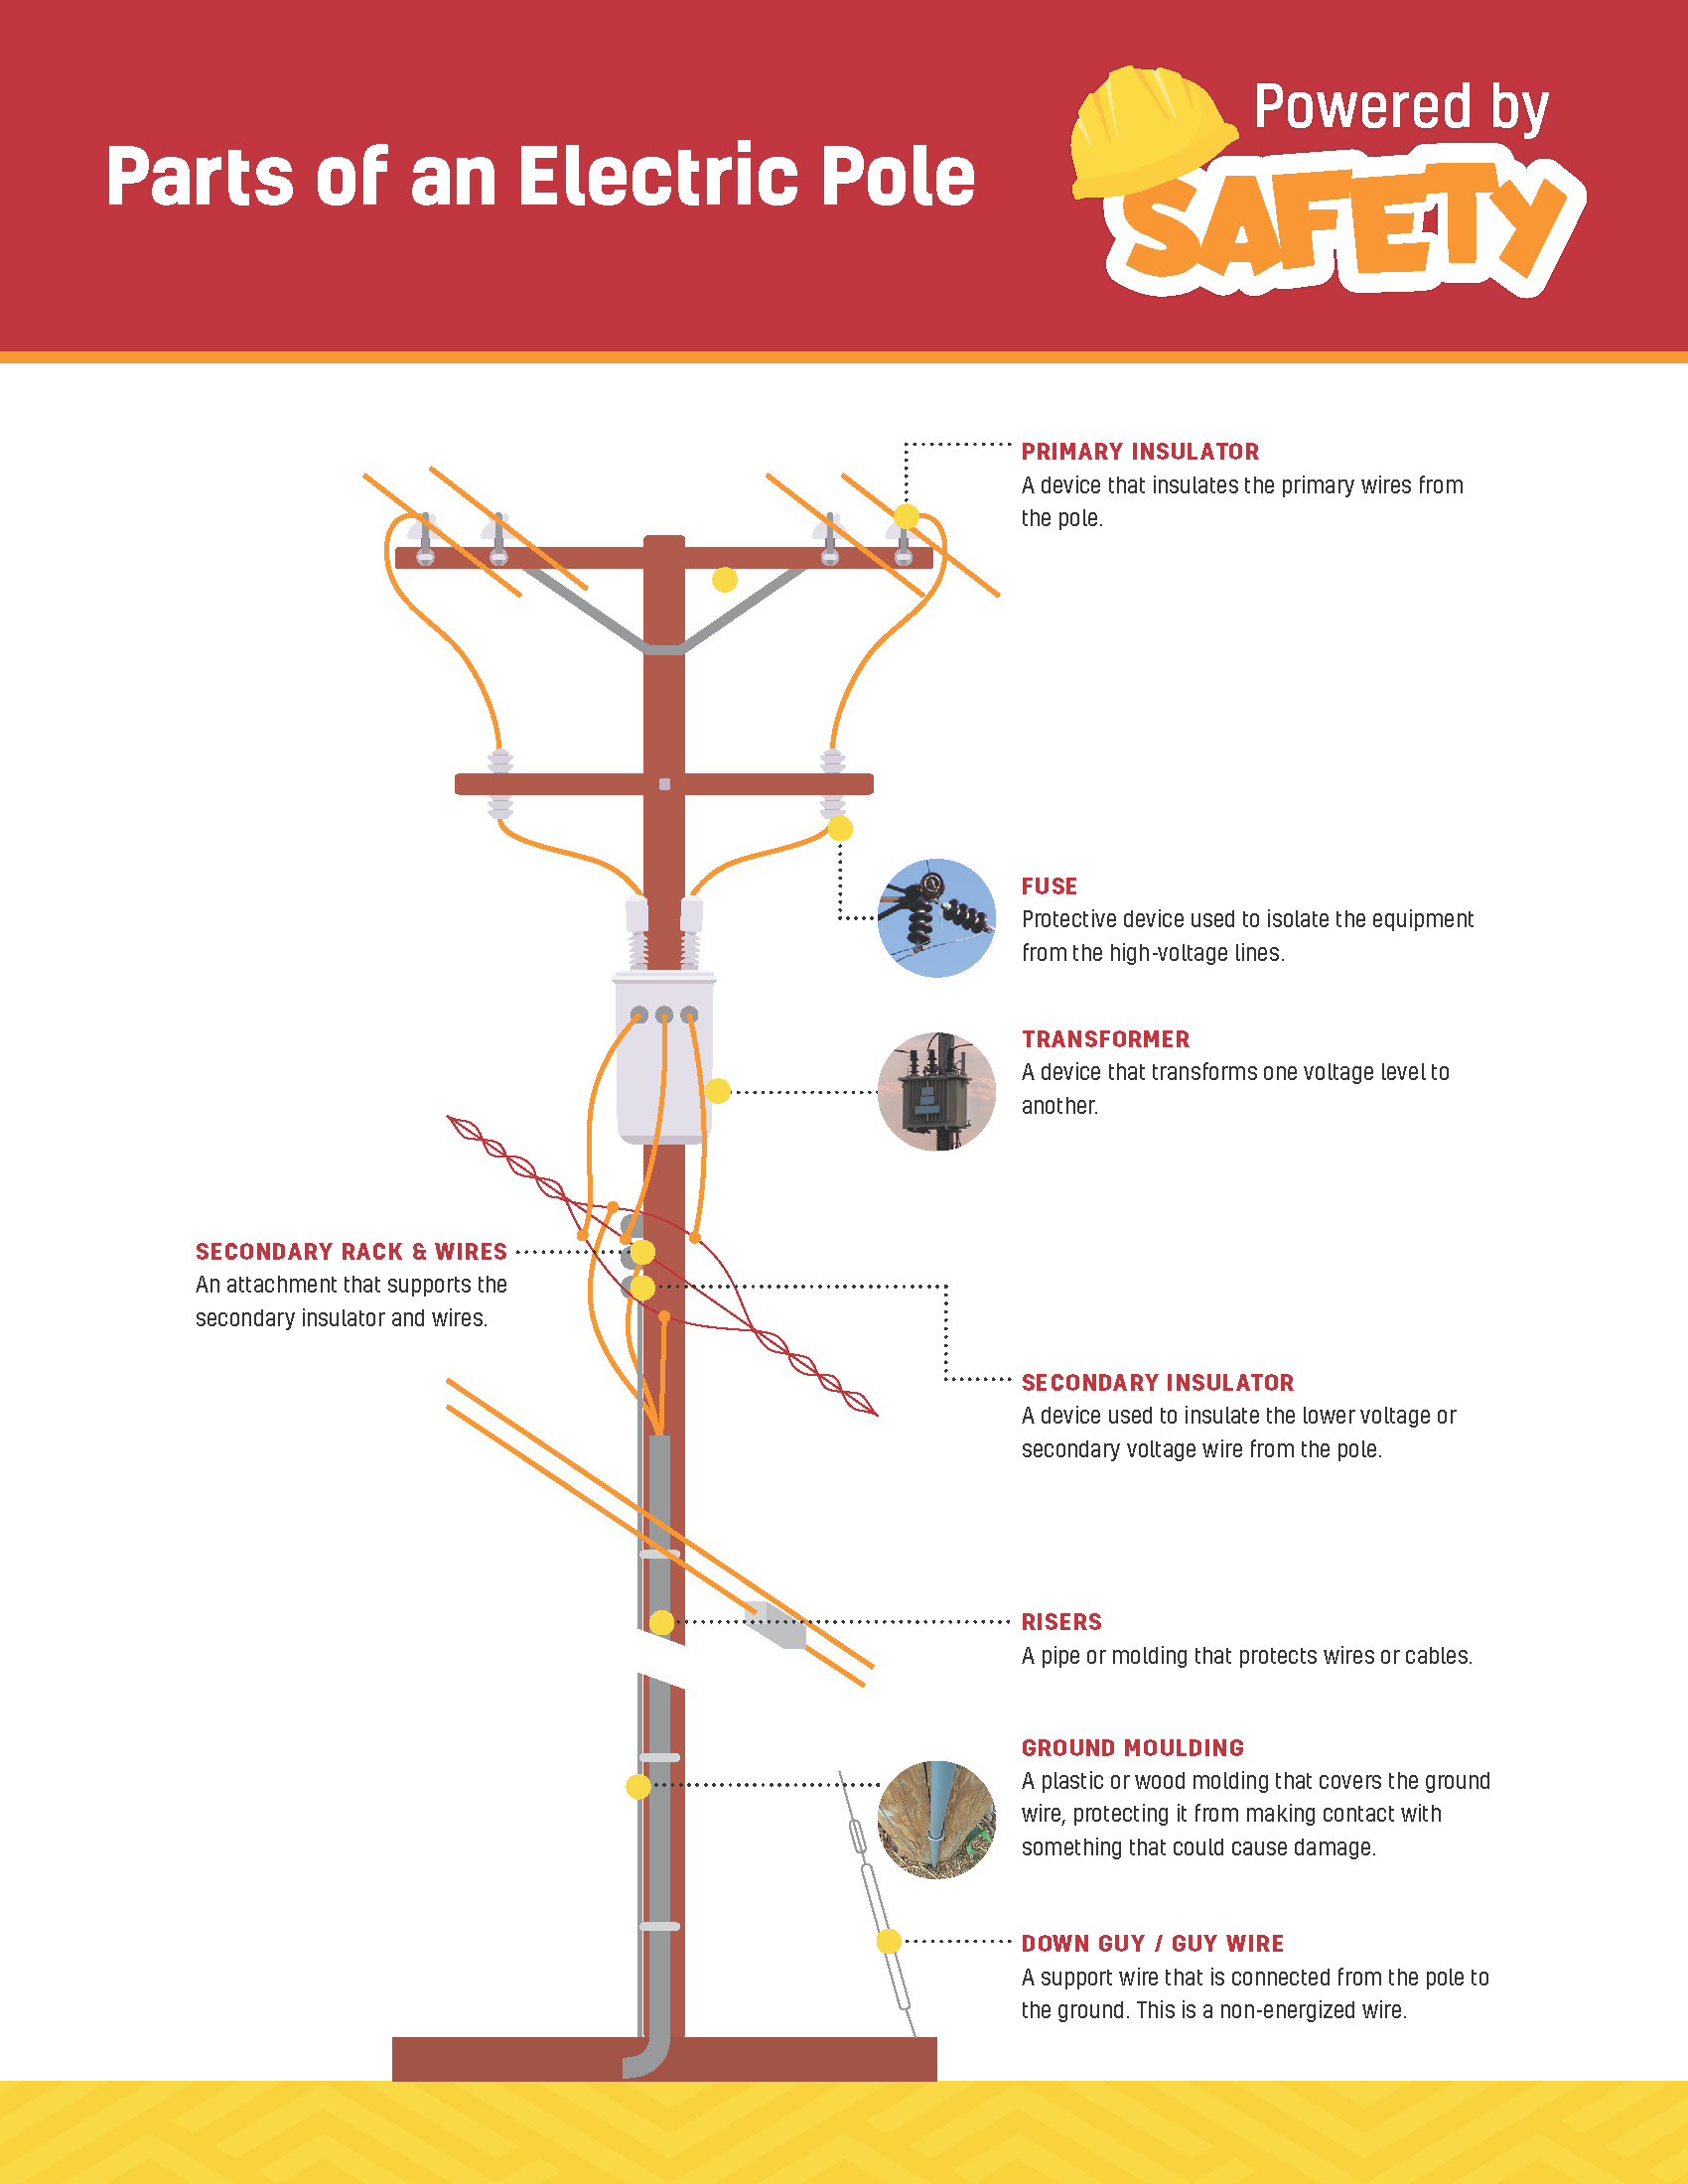 Parts of an electric pole